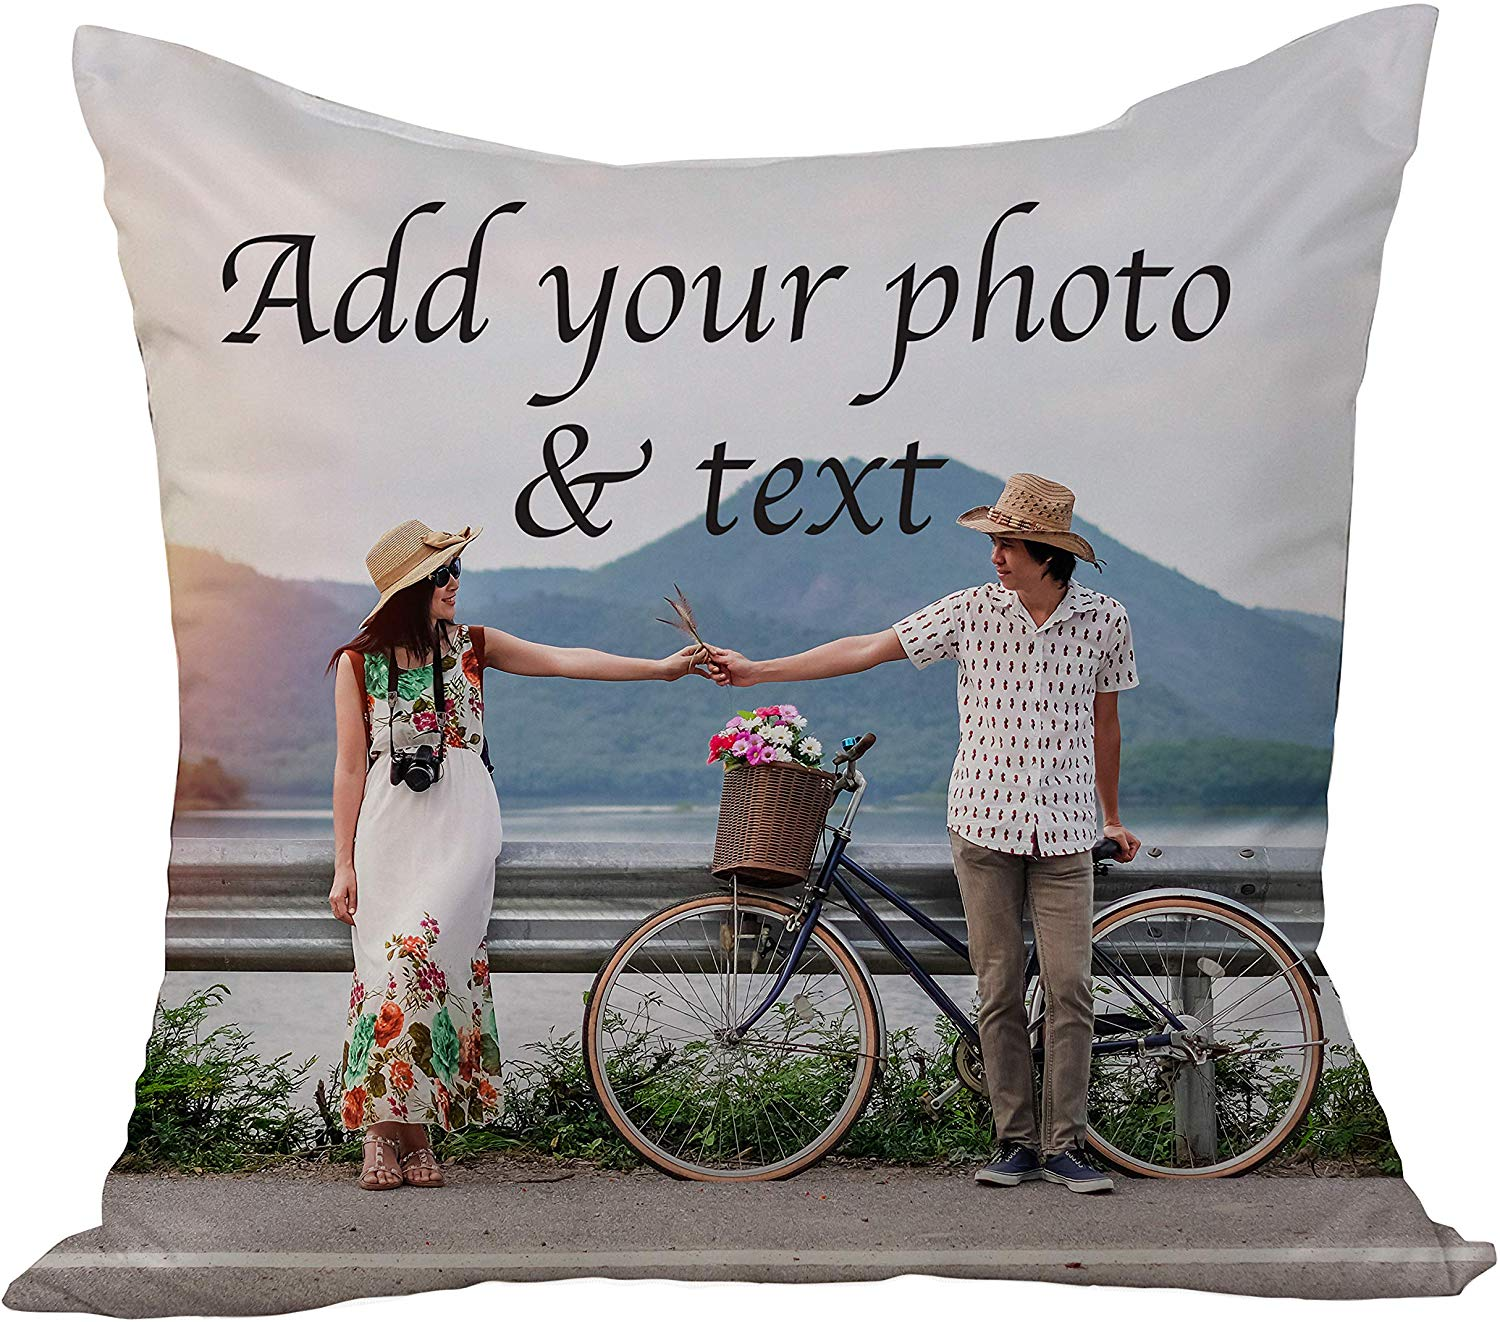 Personalized Cushion Cover